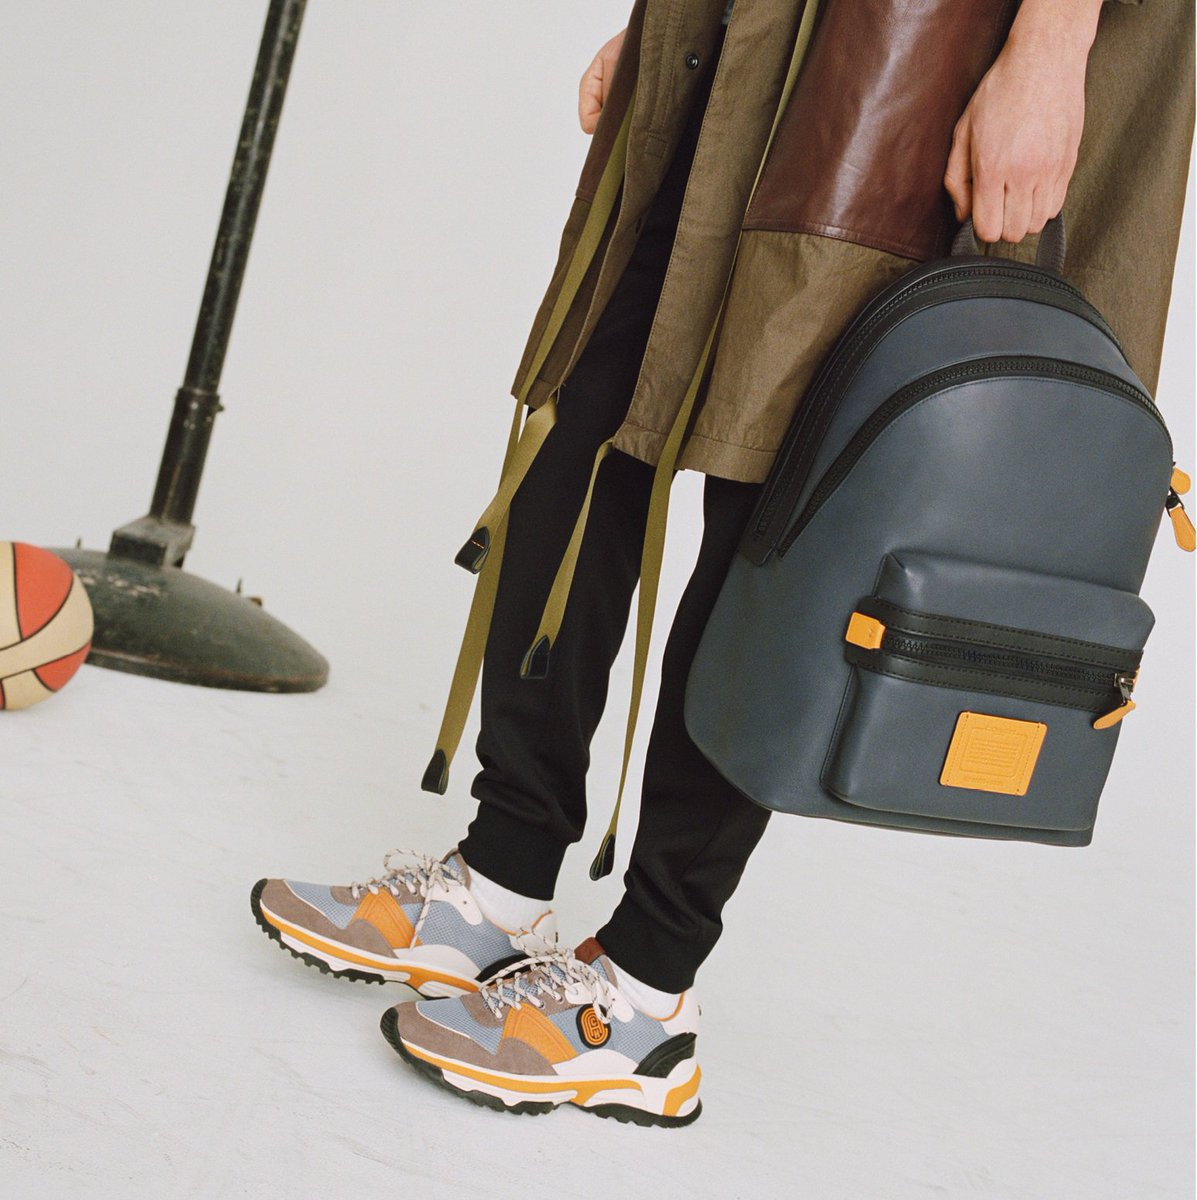 Up the contrast with our colorblocked Academy backpack and C143 Runner — just two ways to punch up basic blues. http://on.coach.com/WeekendShop #CoachNY